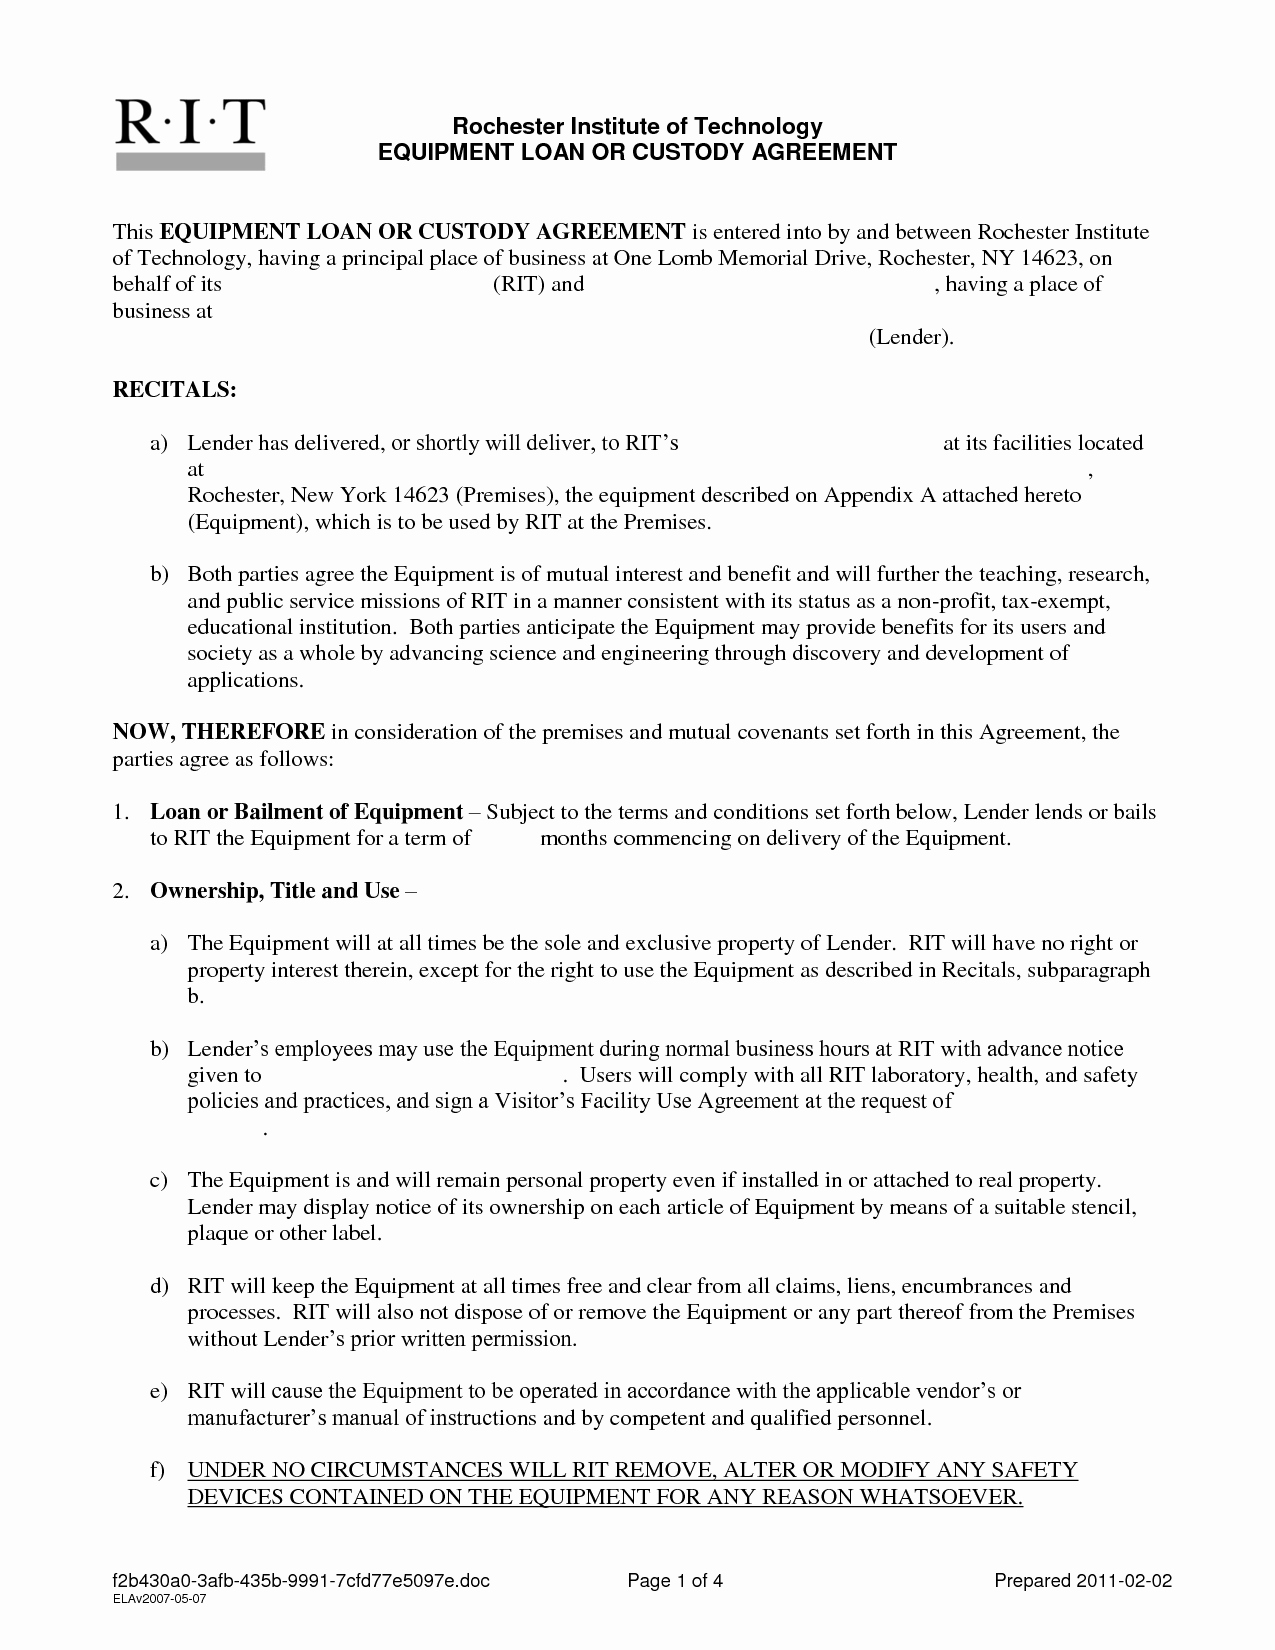 Personal Loan Contract Template New Free Printable Personal Loan Contract form Generic